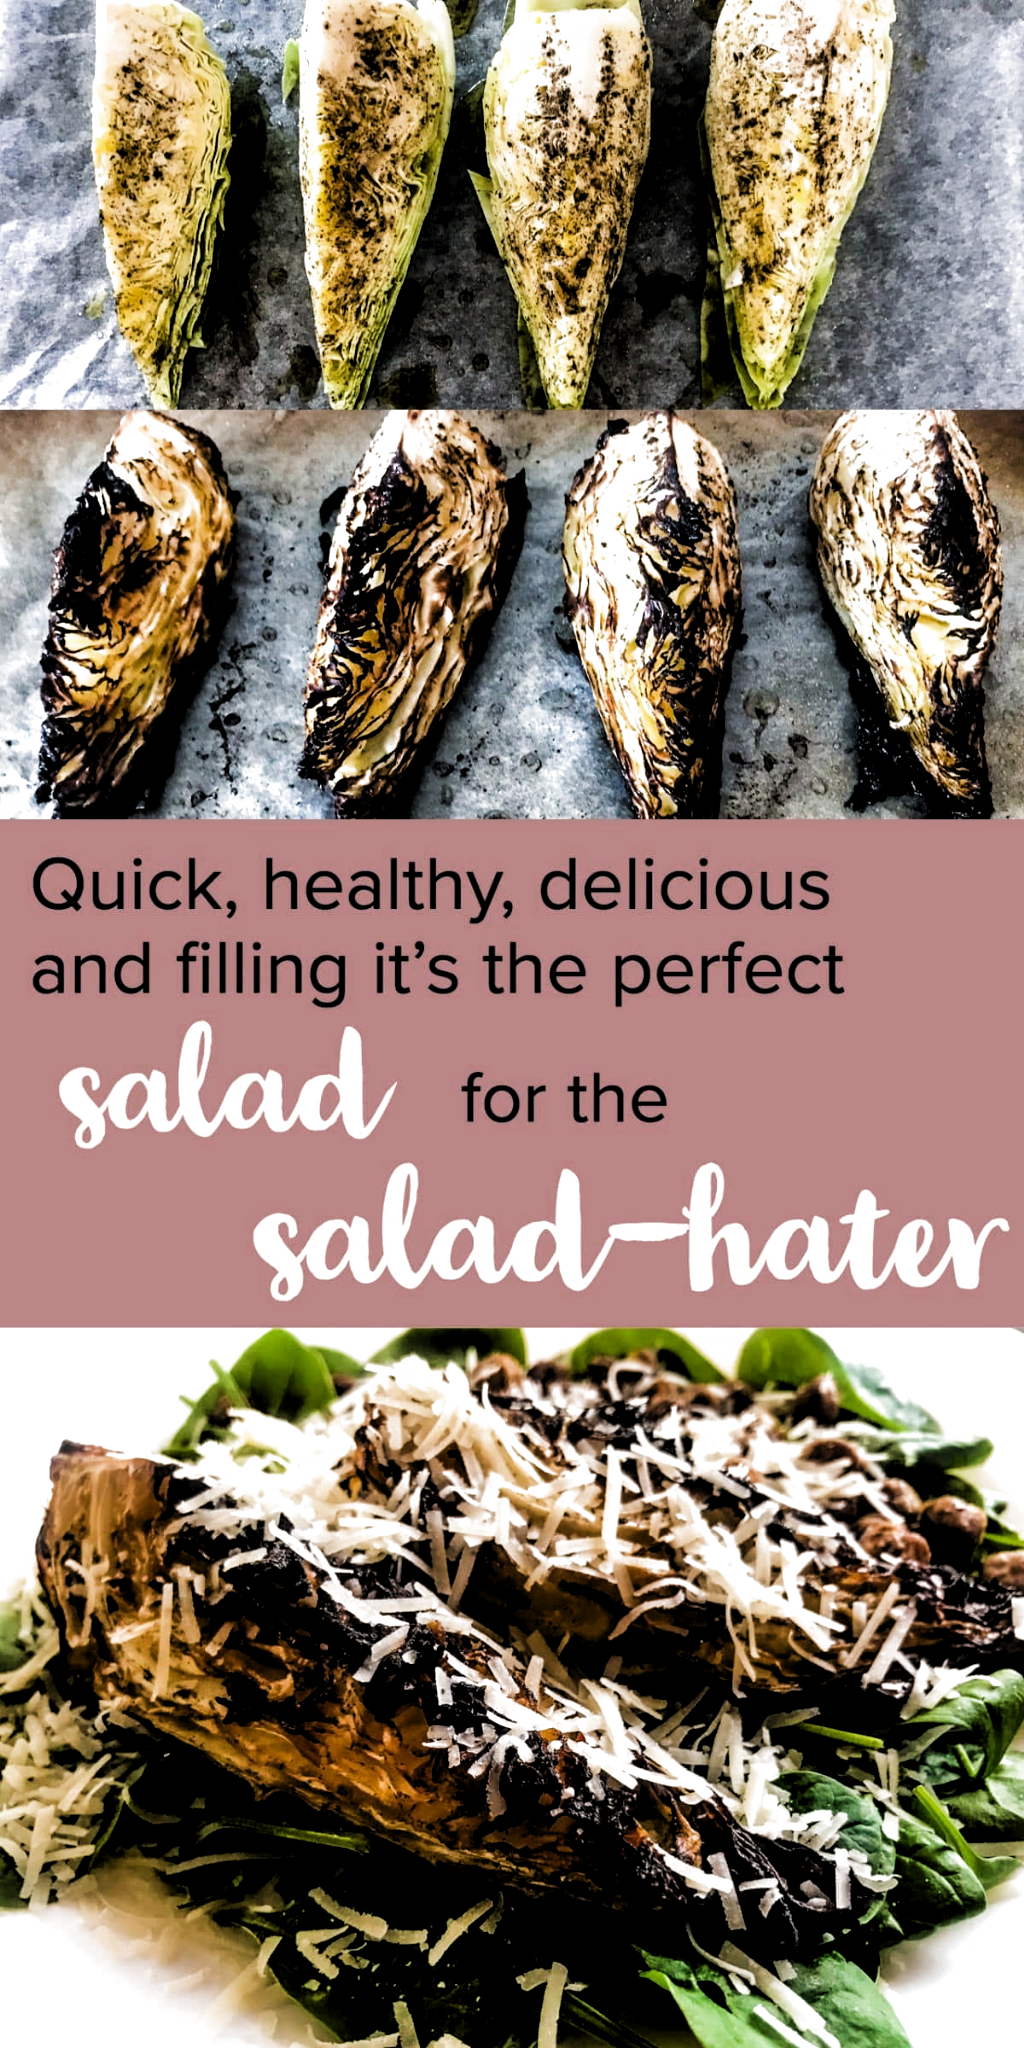 Simple, healthy, quick and delicious - this Pointed Cabbage Salad with Gyoza Chickpeas is sure to leave you full and hella satisfied, all while being filled with healthy goodness. Oh, and its perfect to make ahead for lunch or dinner as well! #alwaysusebutter #fillingsalad #saladrecipes #salad #healthyrecipes #healthy #gyoza #chickpeas #recipes